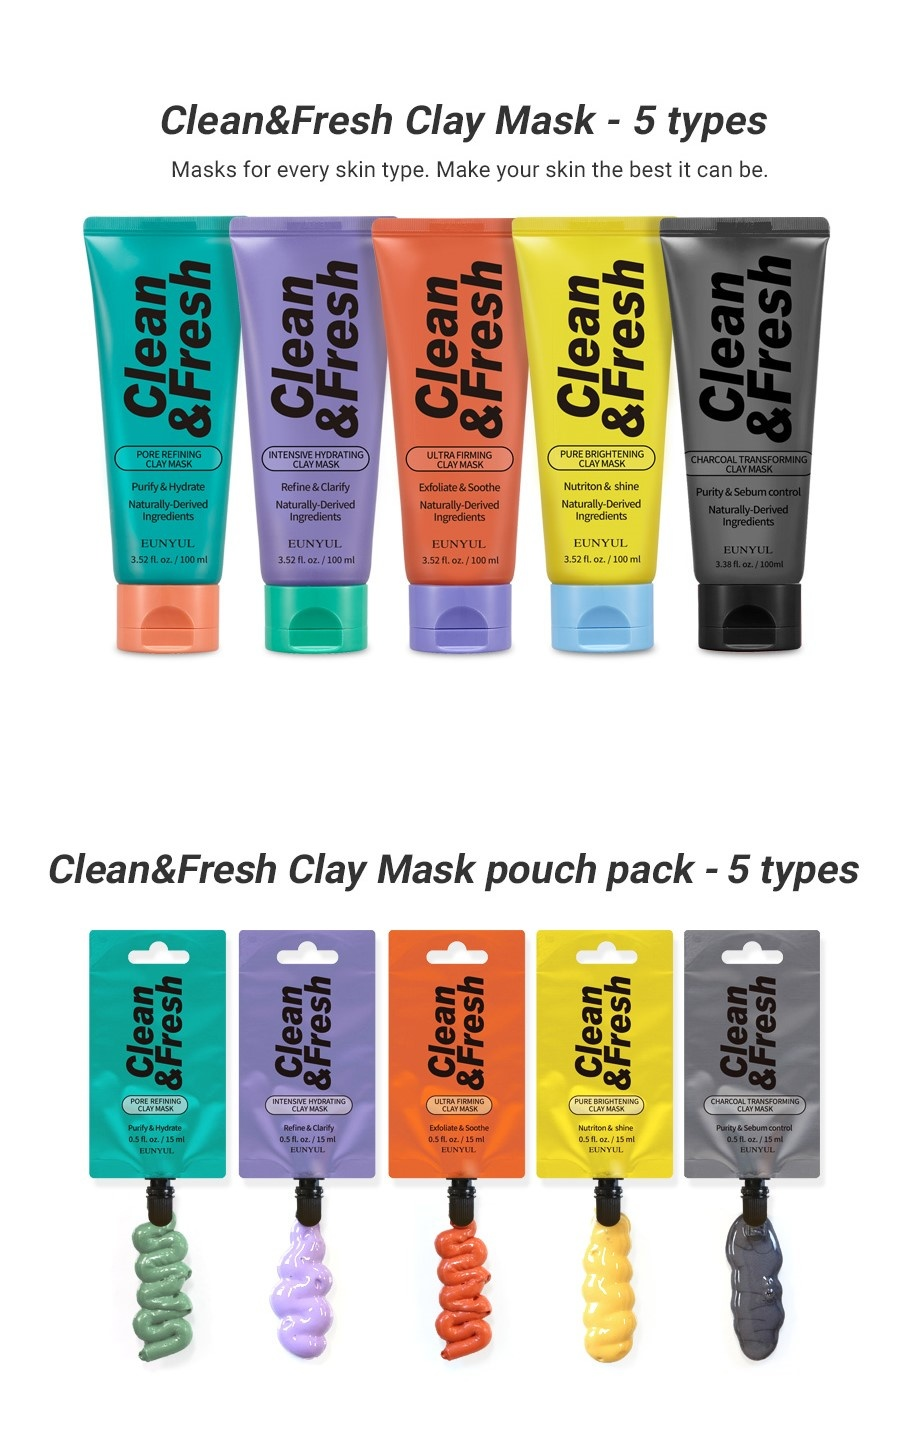 Clean & Fresh Clay Mask Pouch Pack - Intense Hydrating-5